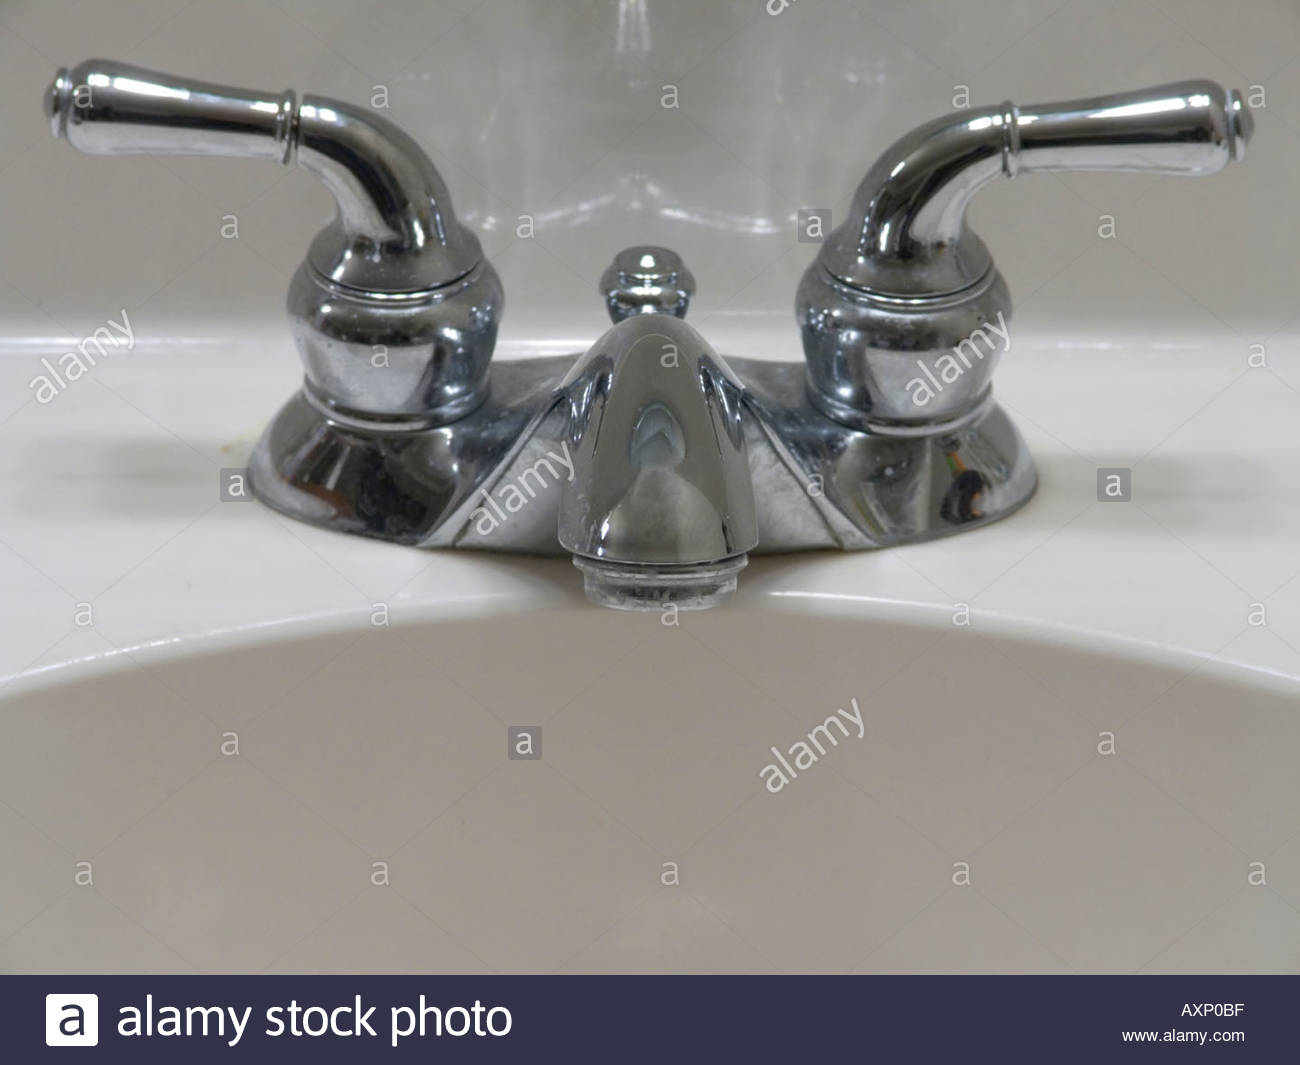 old style faucet Stock Photo, Royalty Free Image: 3137726 - Alamy